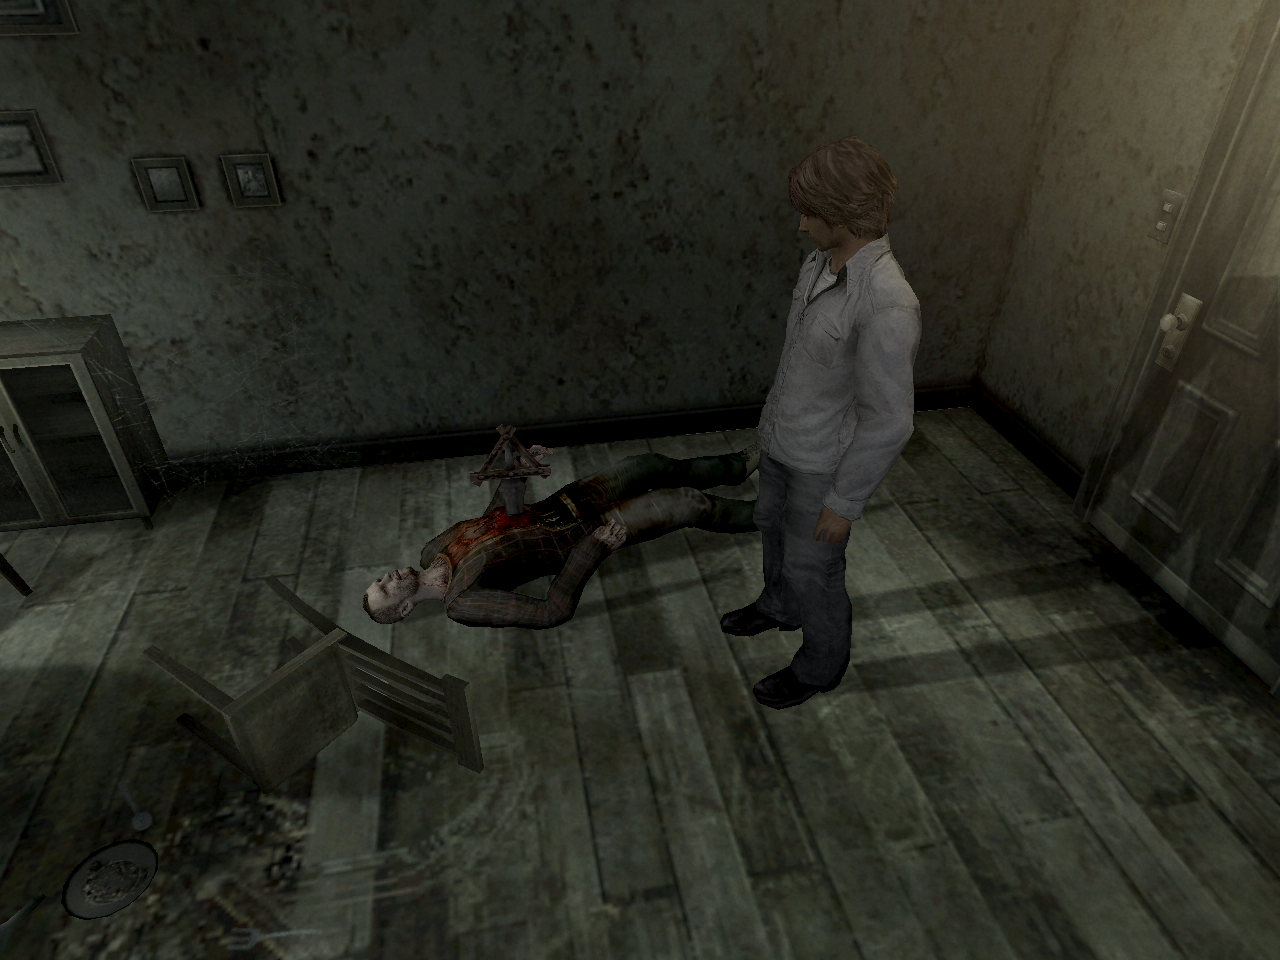 Silent Hill 4 The Room Español [Pc-Full] [ISO] Putlocker-JumboFiles mejores que Mediafire Gratis